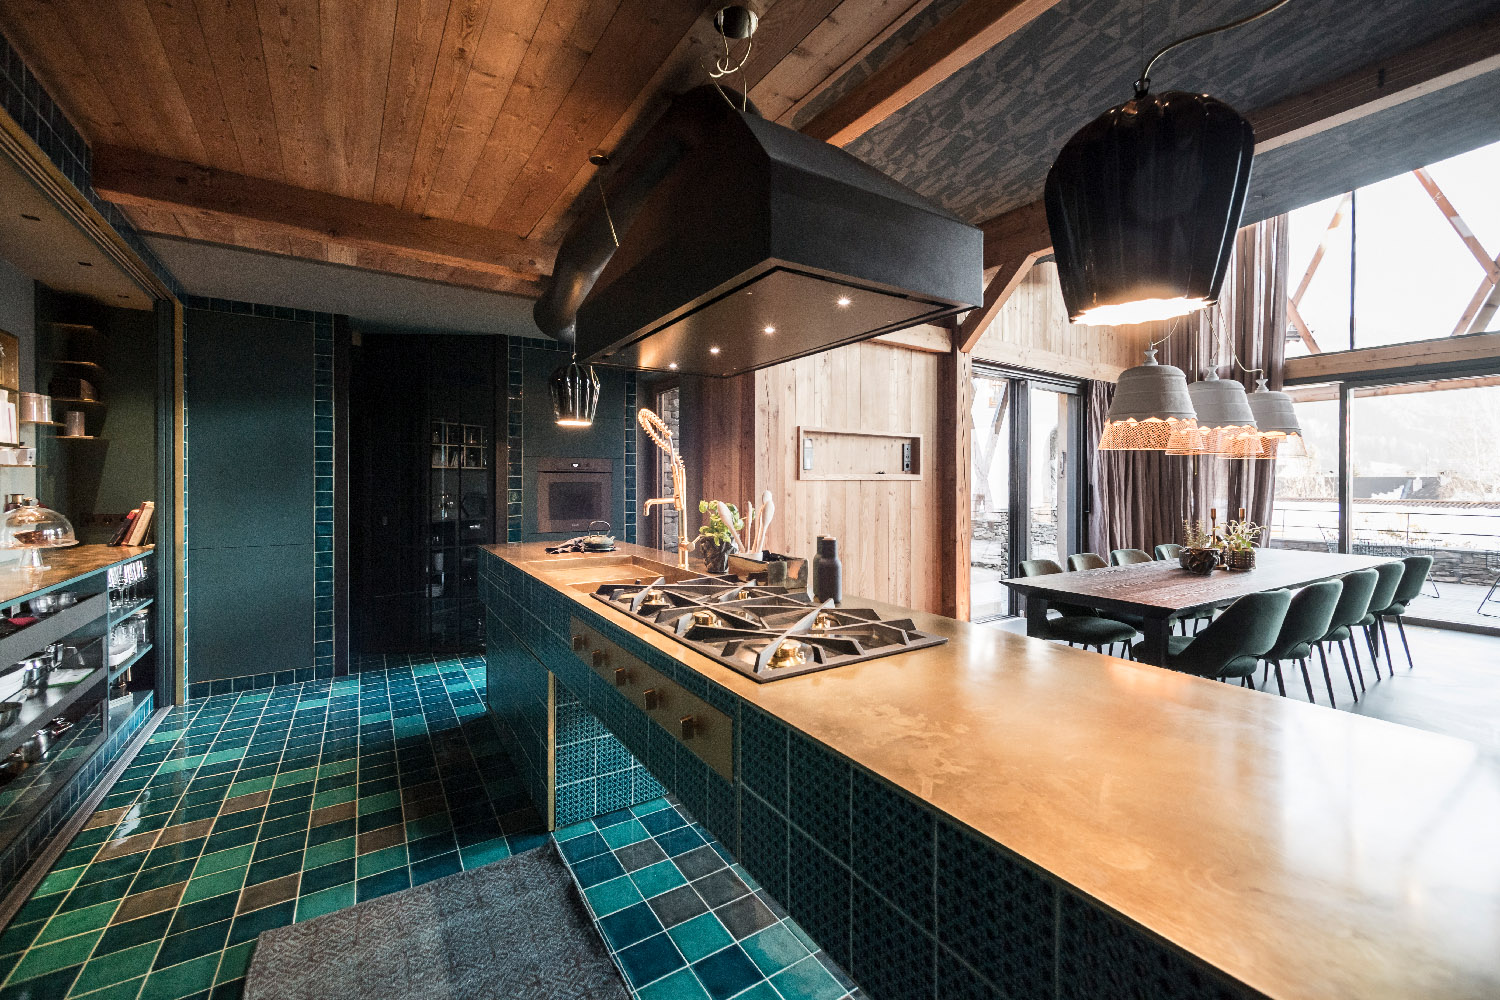 The Messner kitchen with it's iconic central piece Alex Filz